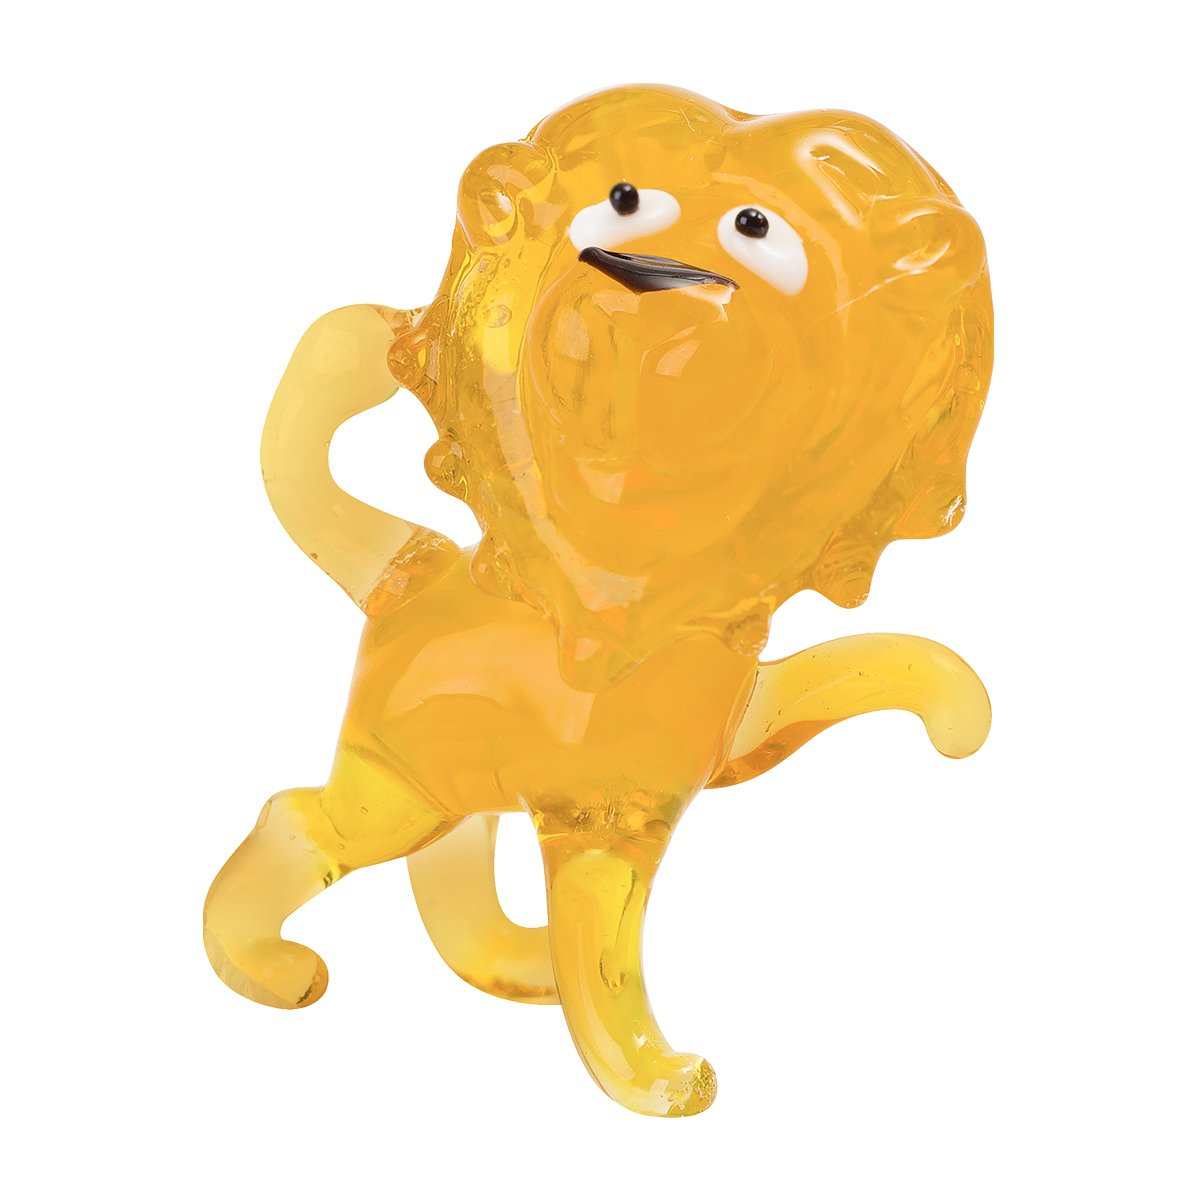 Tynies Handmade Glass Figurine with Collectors Frame Yellow1.9 x 1.6 x 1.2 Tynies Collectibles 170 Luca Lion